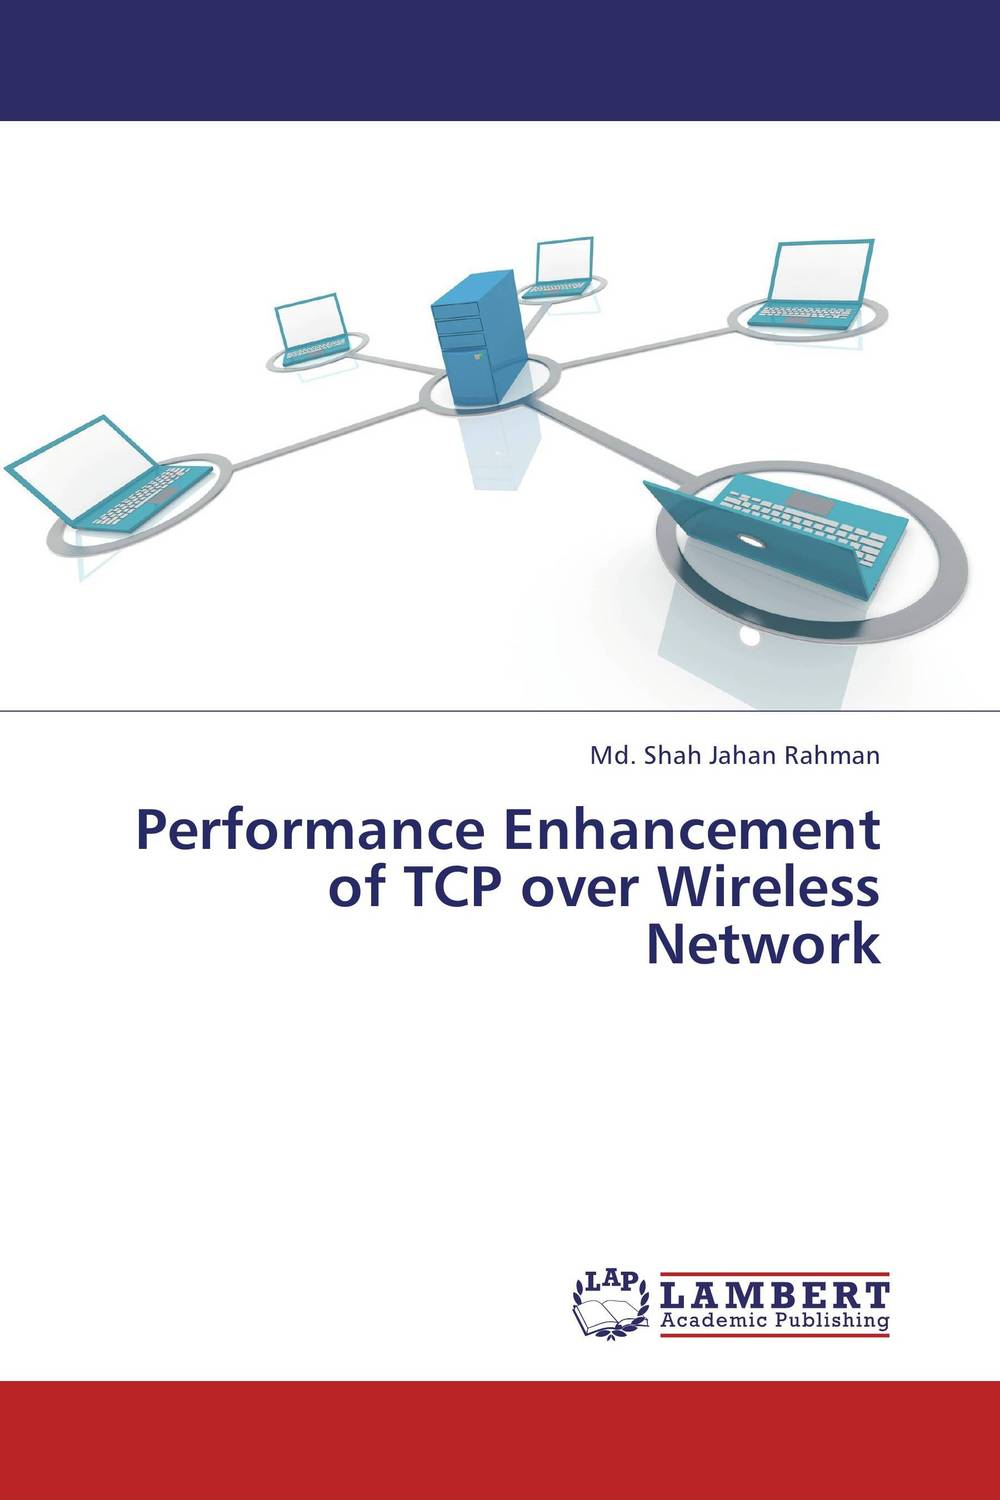 Performance Enhancement of TCP over Wireless Network mohammad usman ali khan optimization of tcp over wireless networks